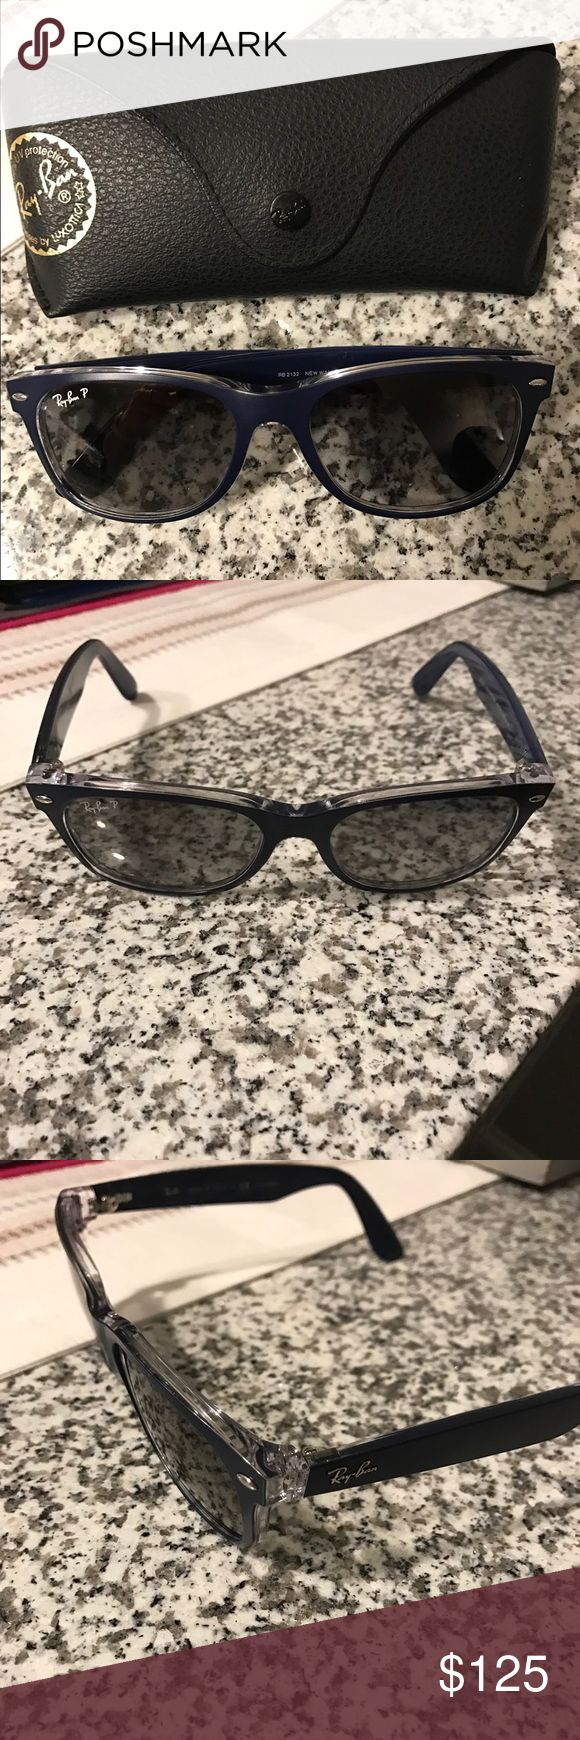 Ray Ban Polarized Sunglasses Polarized Ray Ban Wayfarer sunglasses. Only wore a handful of times. Comes with case shown. No scratches on lenses. Matte navy blue and clear. Currently selling for $190 at Sunglass Hut. Ray-Ban Accessories Sunglasses